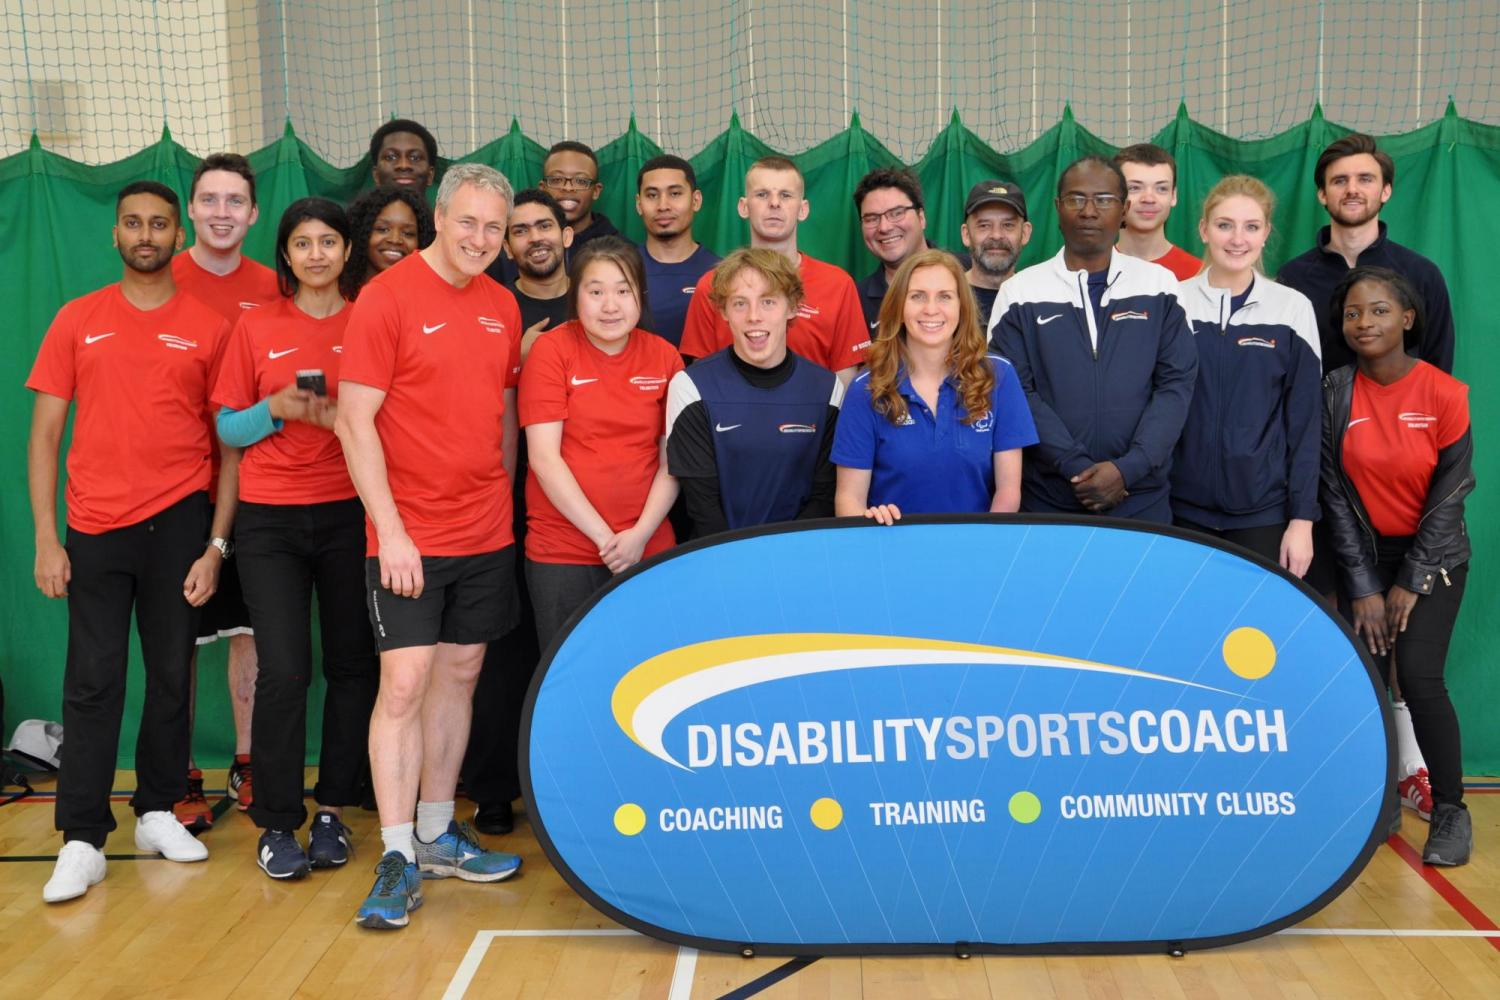 Disability Sports Coach - House of Sport - London Sport